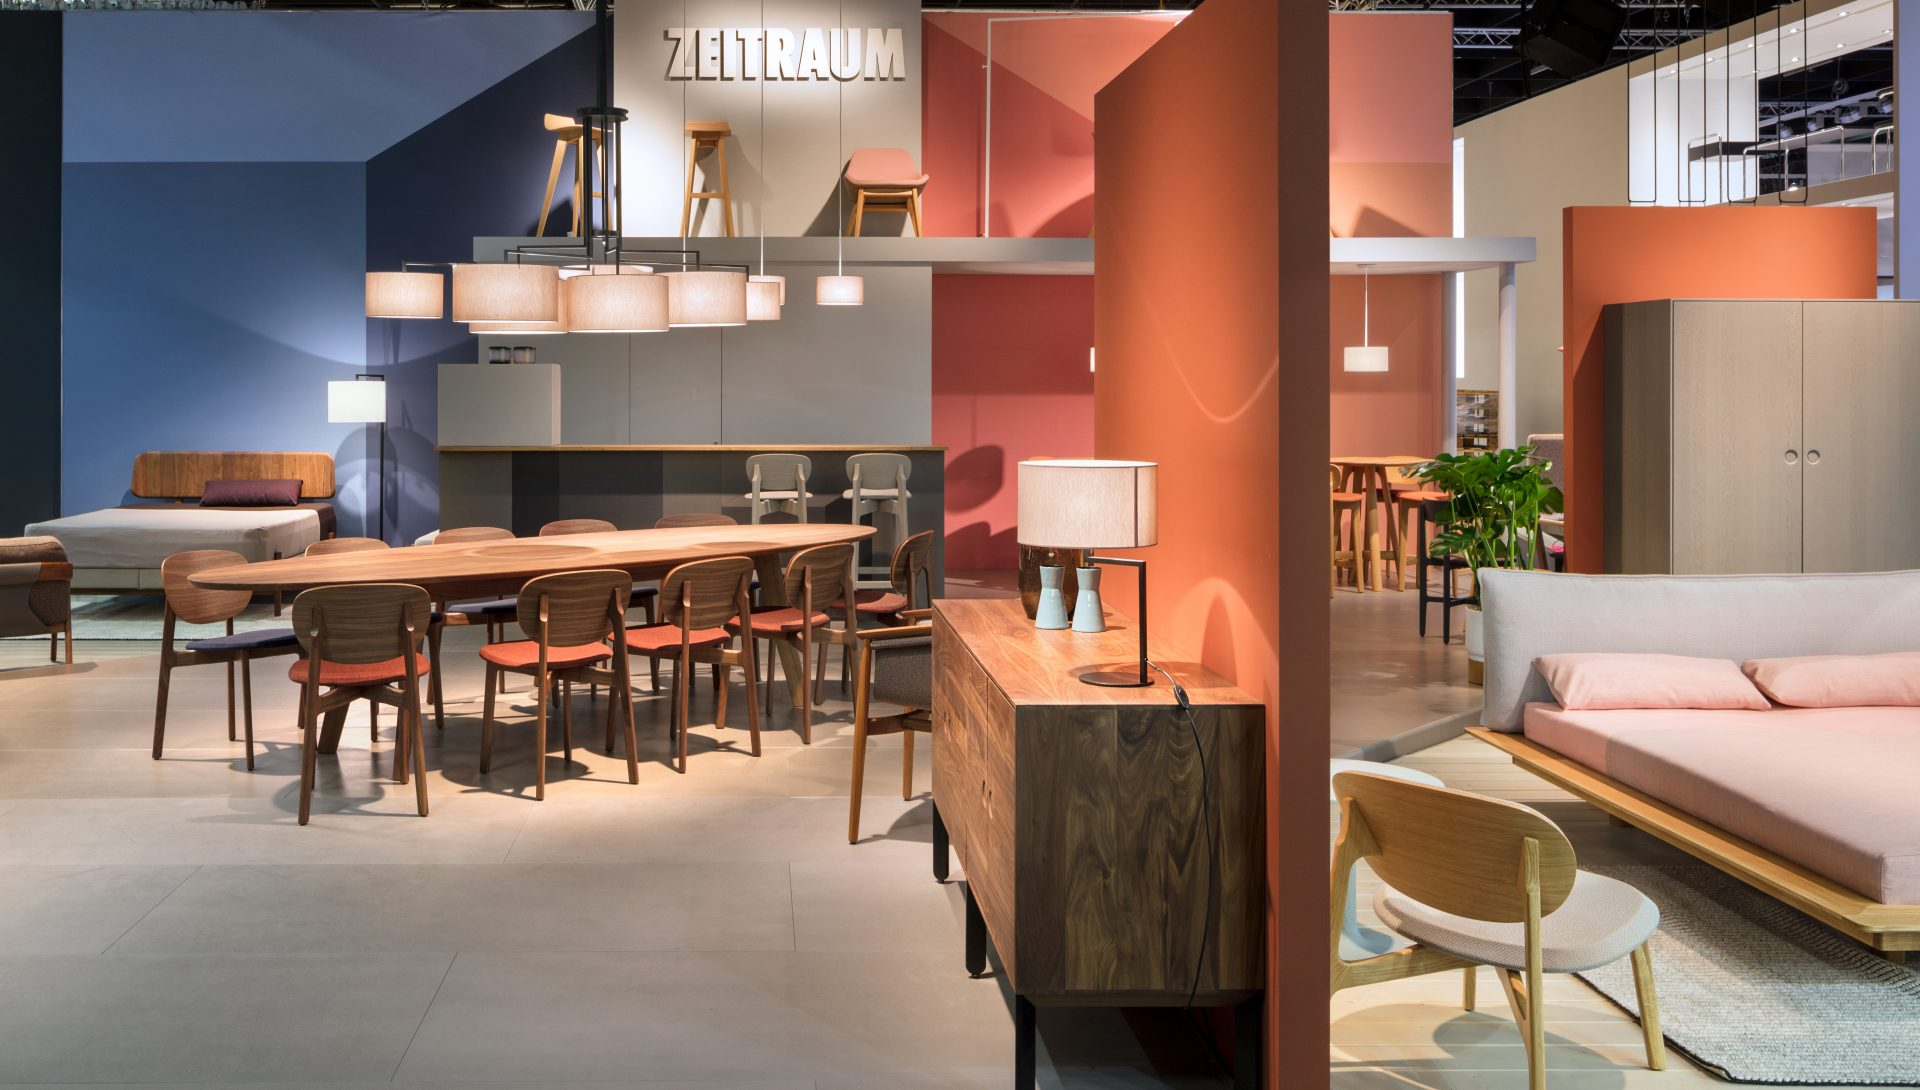 The Event You Must Attend In January, Welcome To IMM Cologne 2019 2 imm cologne 2019 The Event You Must Attend In January, Welcome To IMM Cologne 2019 The Event You Must Attend In January Welcome To IMM Cologne 2019 2